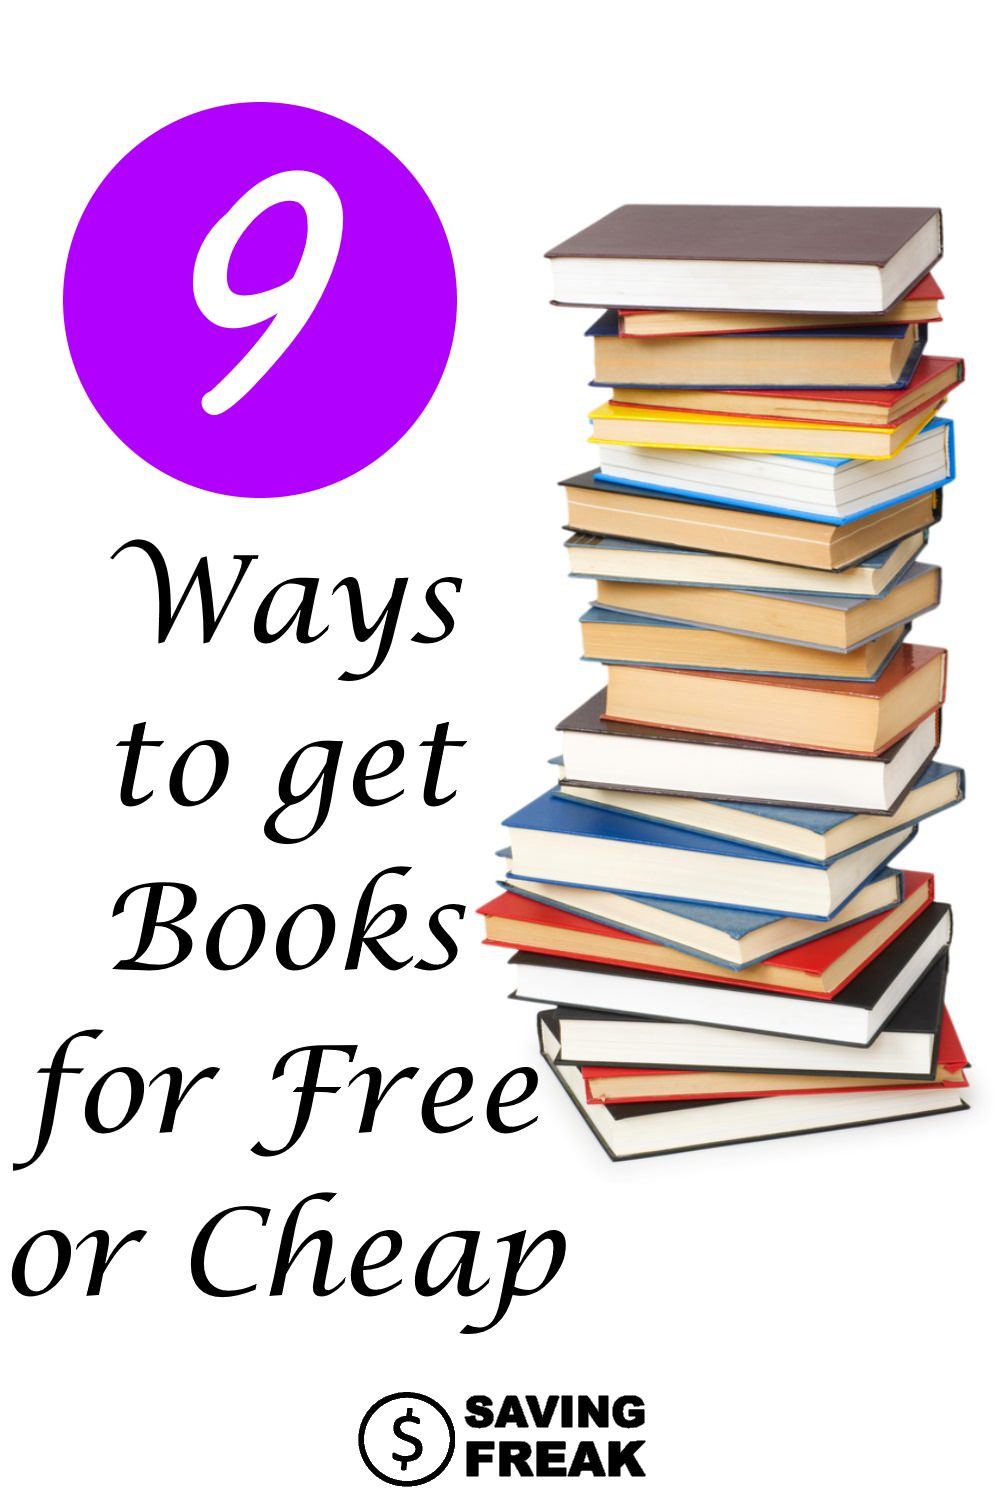 how to get books for free or cheap